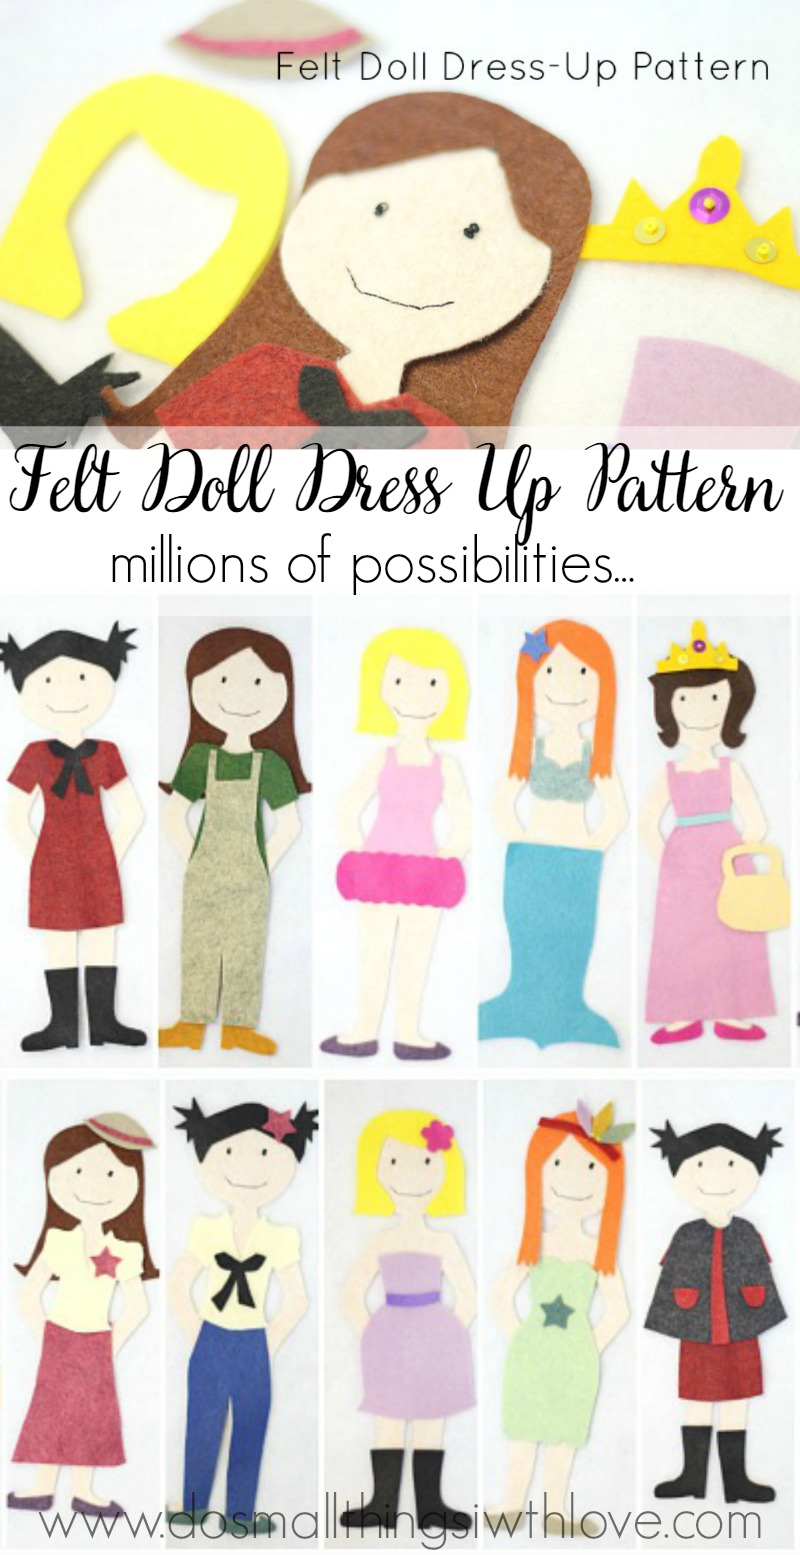 felt doll dress up pattern--available for only $1!